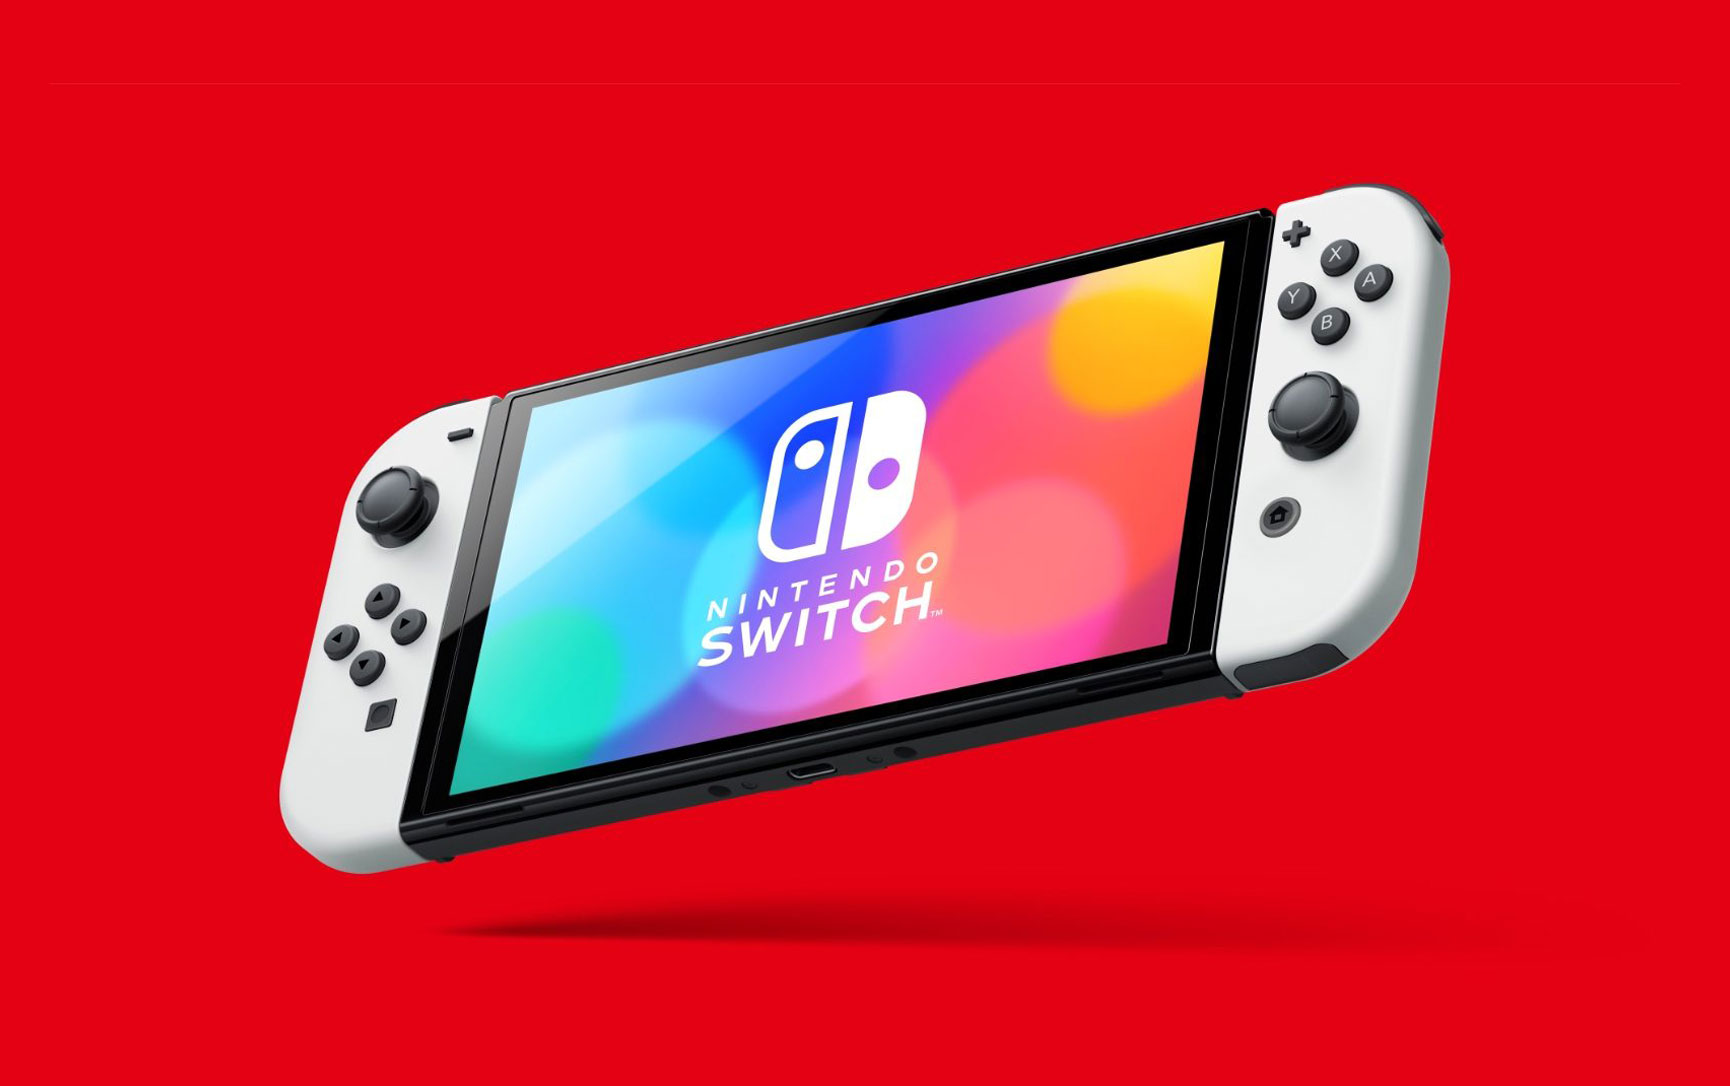 Nintendo Switch updated with the ability to pair AirPods and other Bluetooth headphones